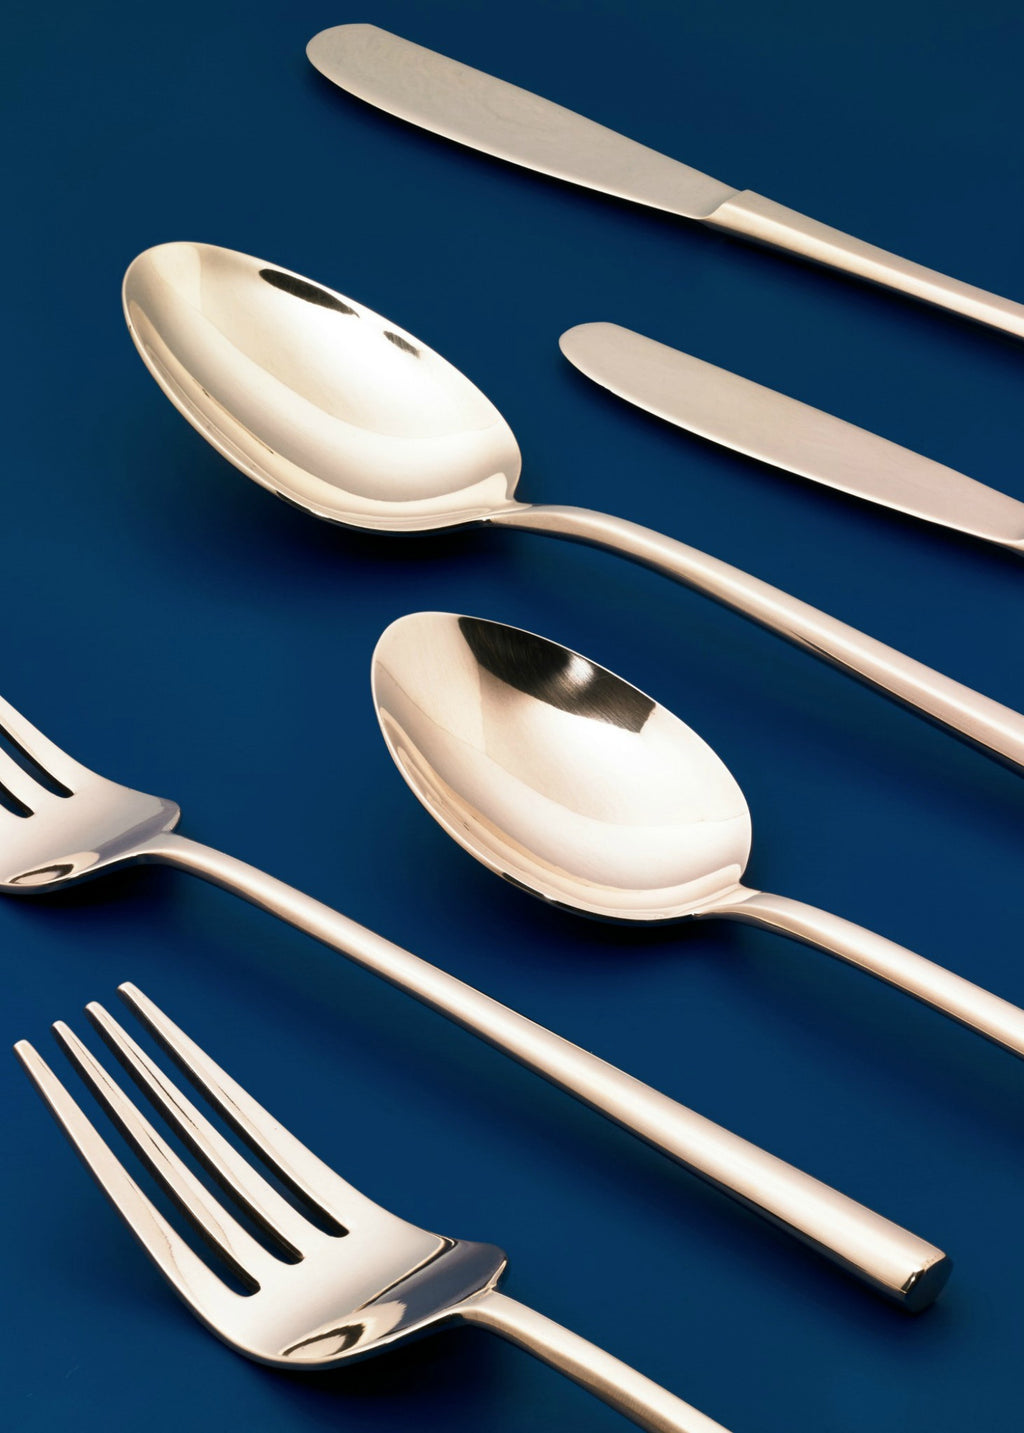 Flatware set round shape - YUYU Sustainable Home Goods